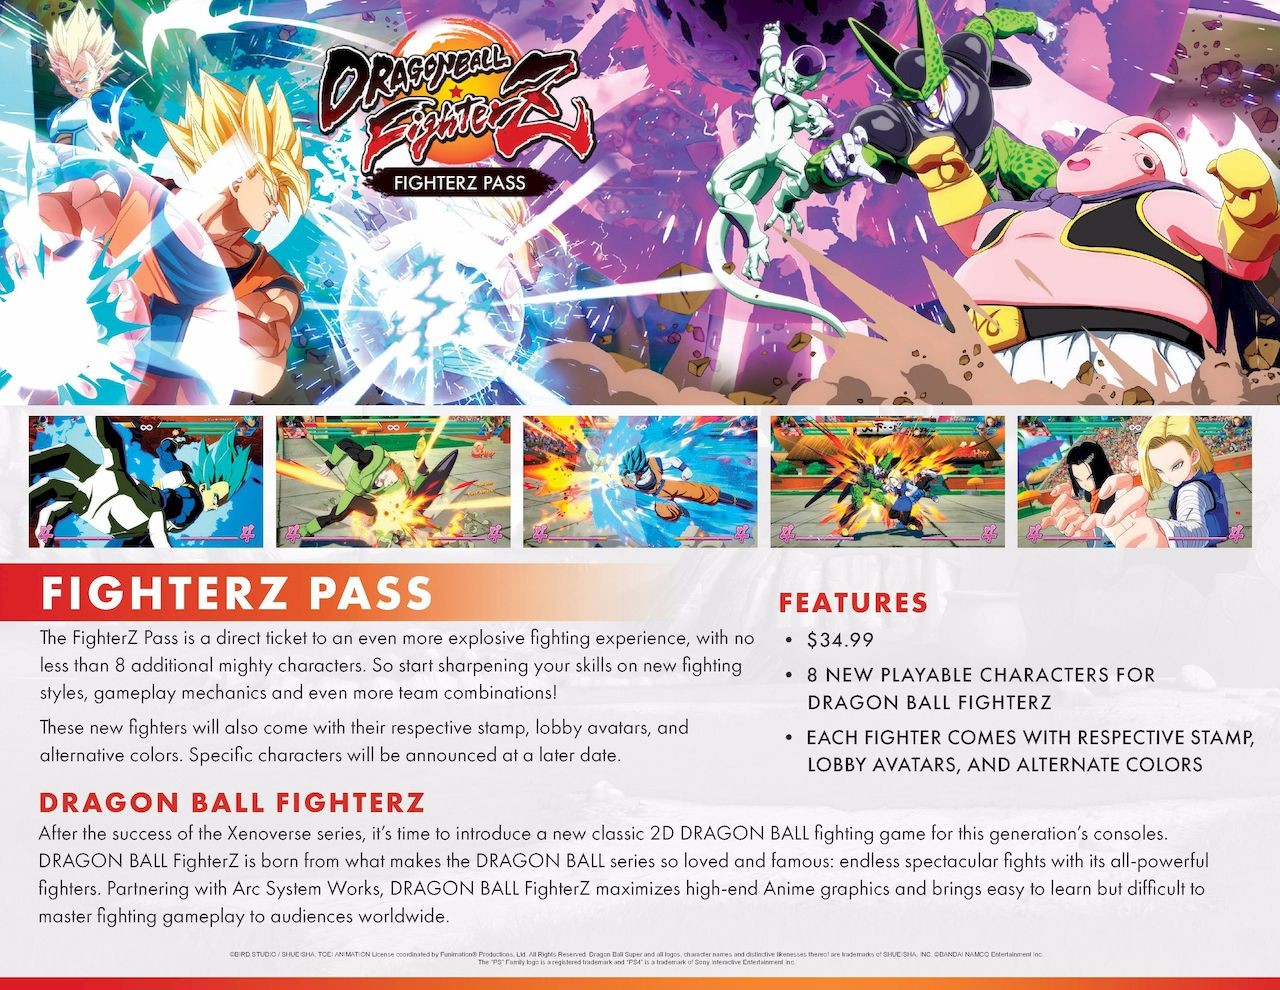 FighterZ Pass for Dragon Ball FighterZ